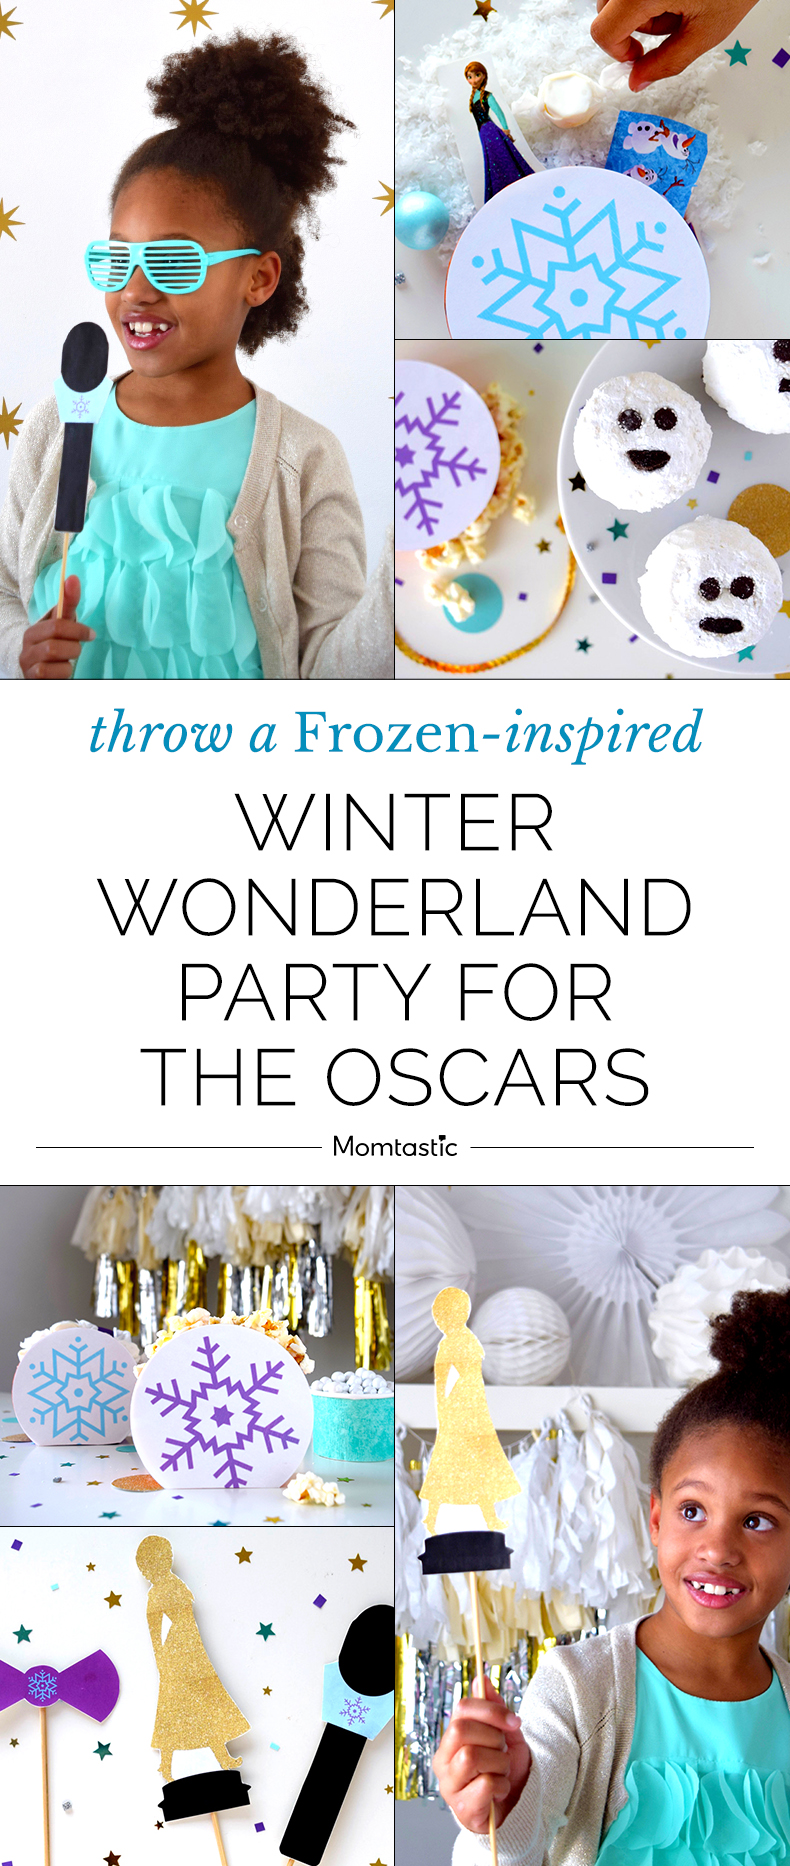 mt_pinterest_pins_disney_oscars_parties_01_r03